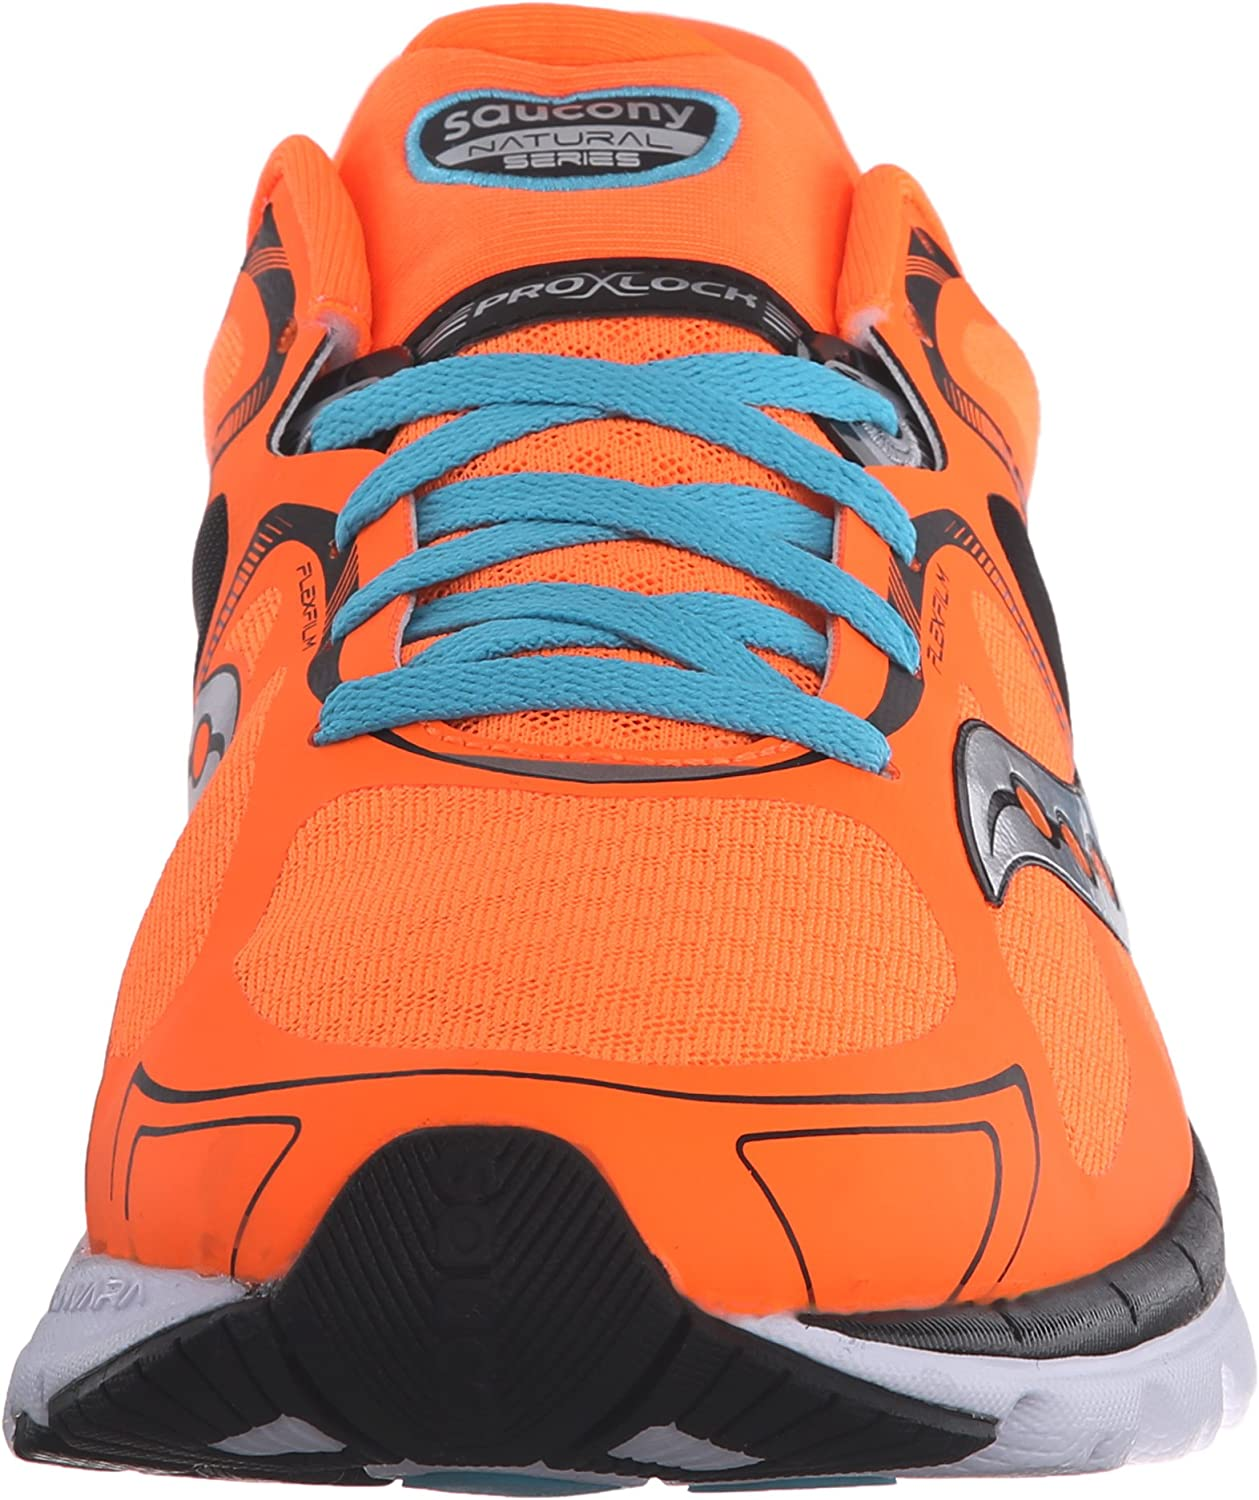 Saucony Men's Kinvara 6 Running Shoe